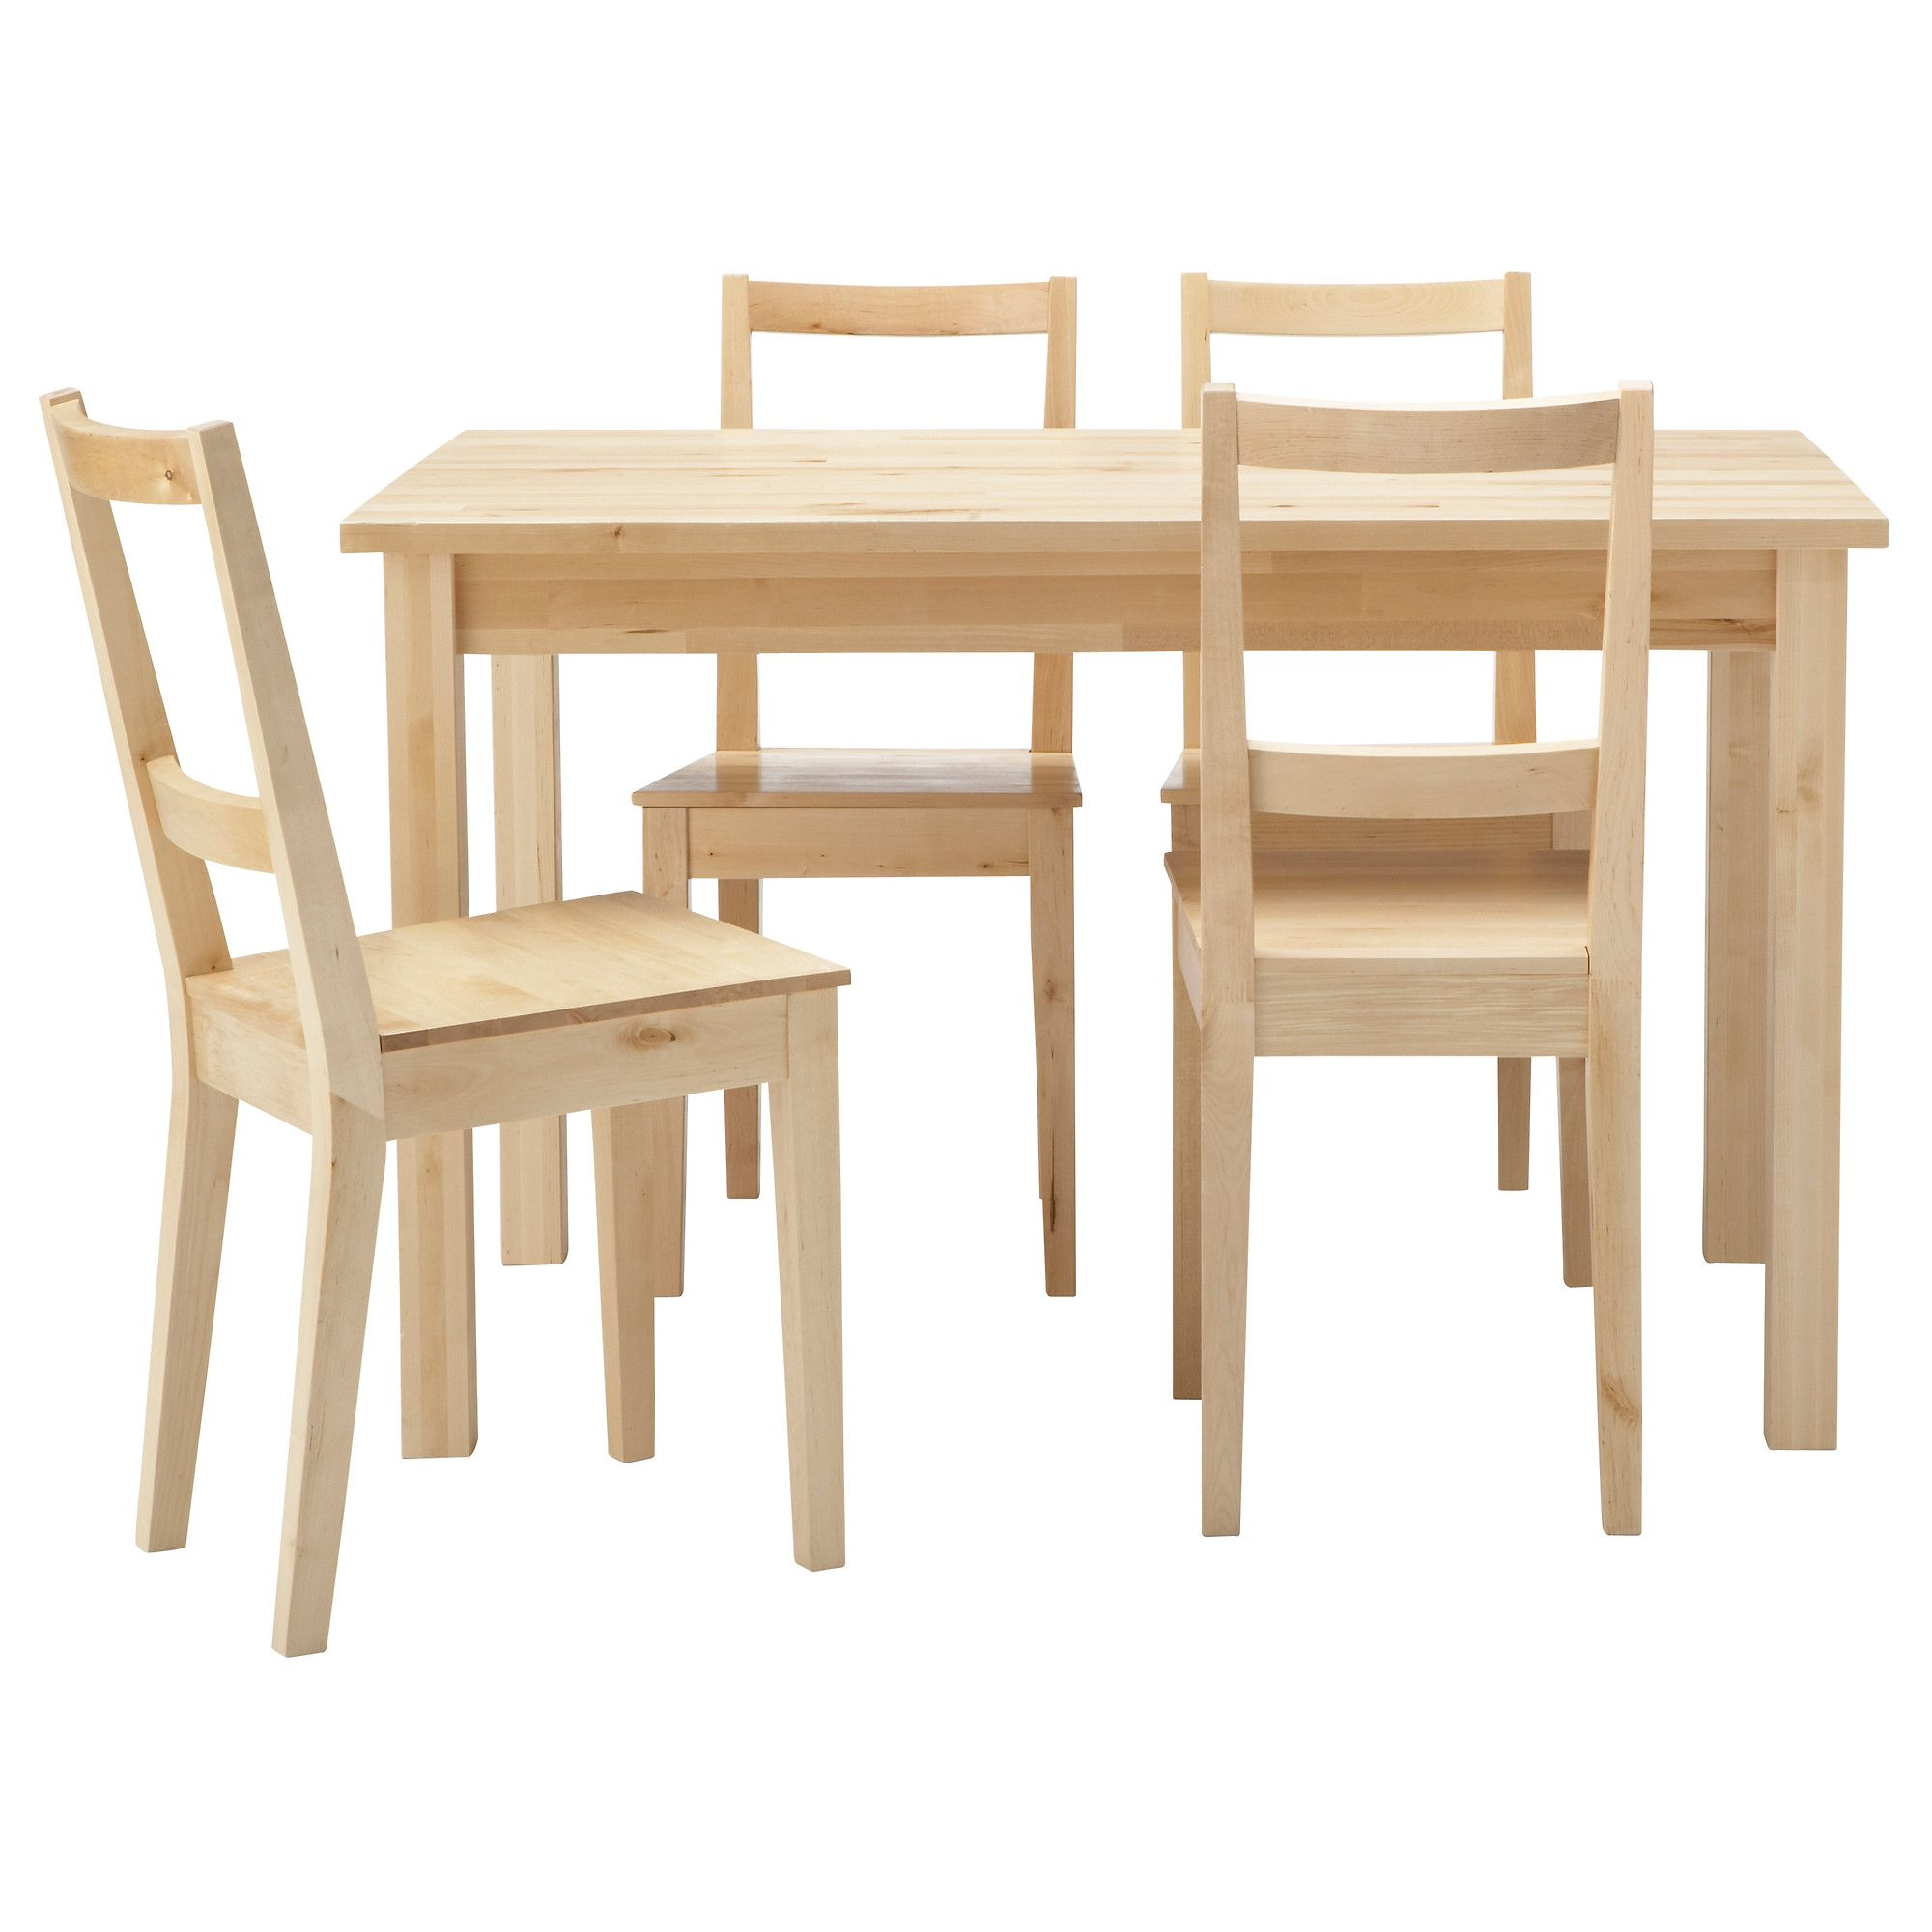 Wooden dining room chairs - Dining Room Small Dining Sets Design For Modern Dining Room Design With Wooden Dining Table Design And Wood Dining Chair Design Ideas Modern Dining Sets